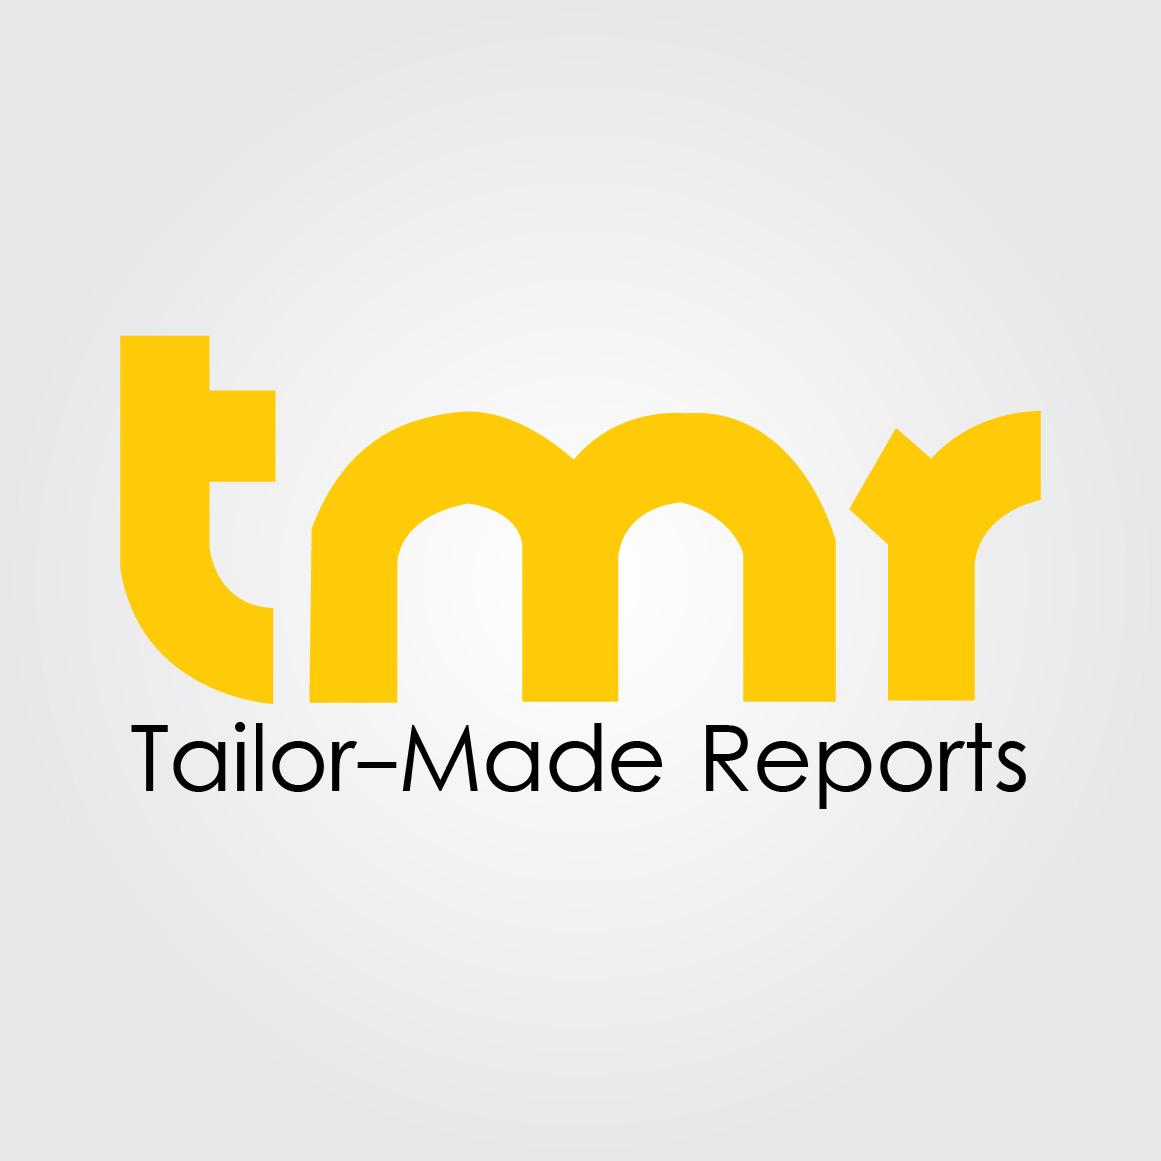 E-waste Management Market Growth and Restrain Factors Analysis Report